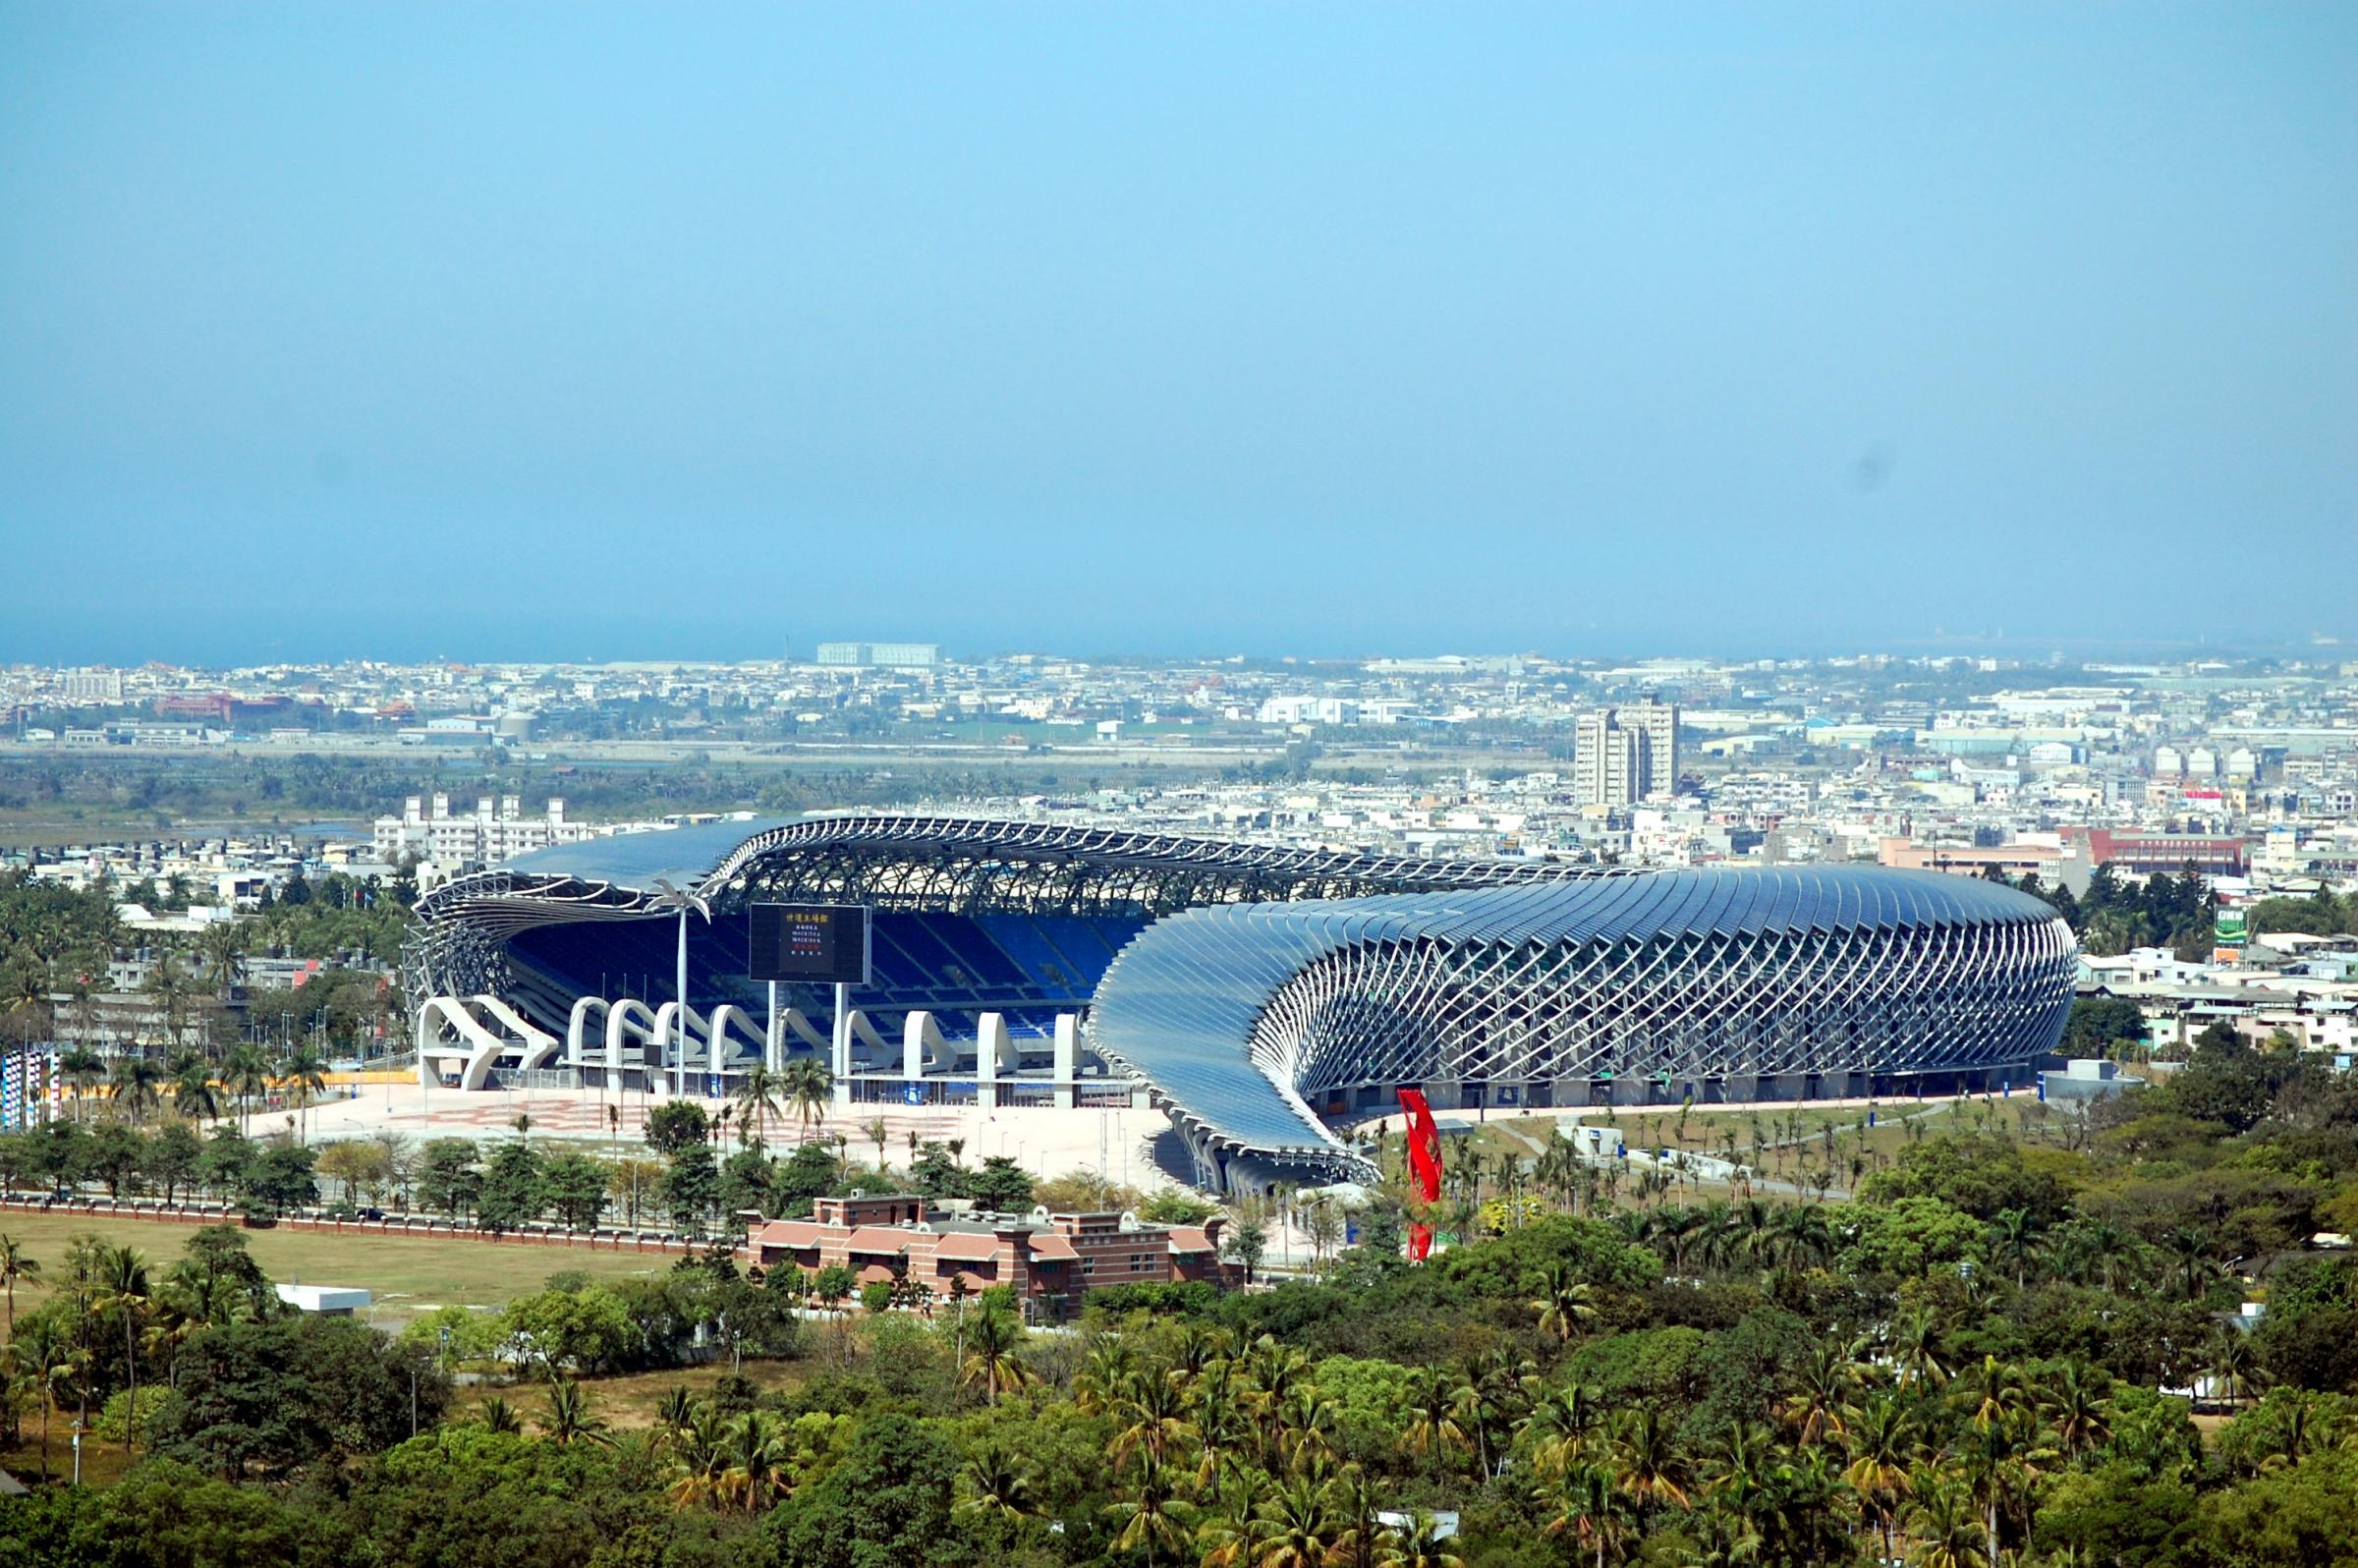 main stadium for the world games 2009, 2006-2009 kaohsiung